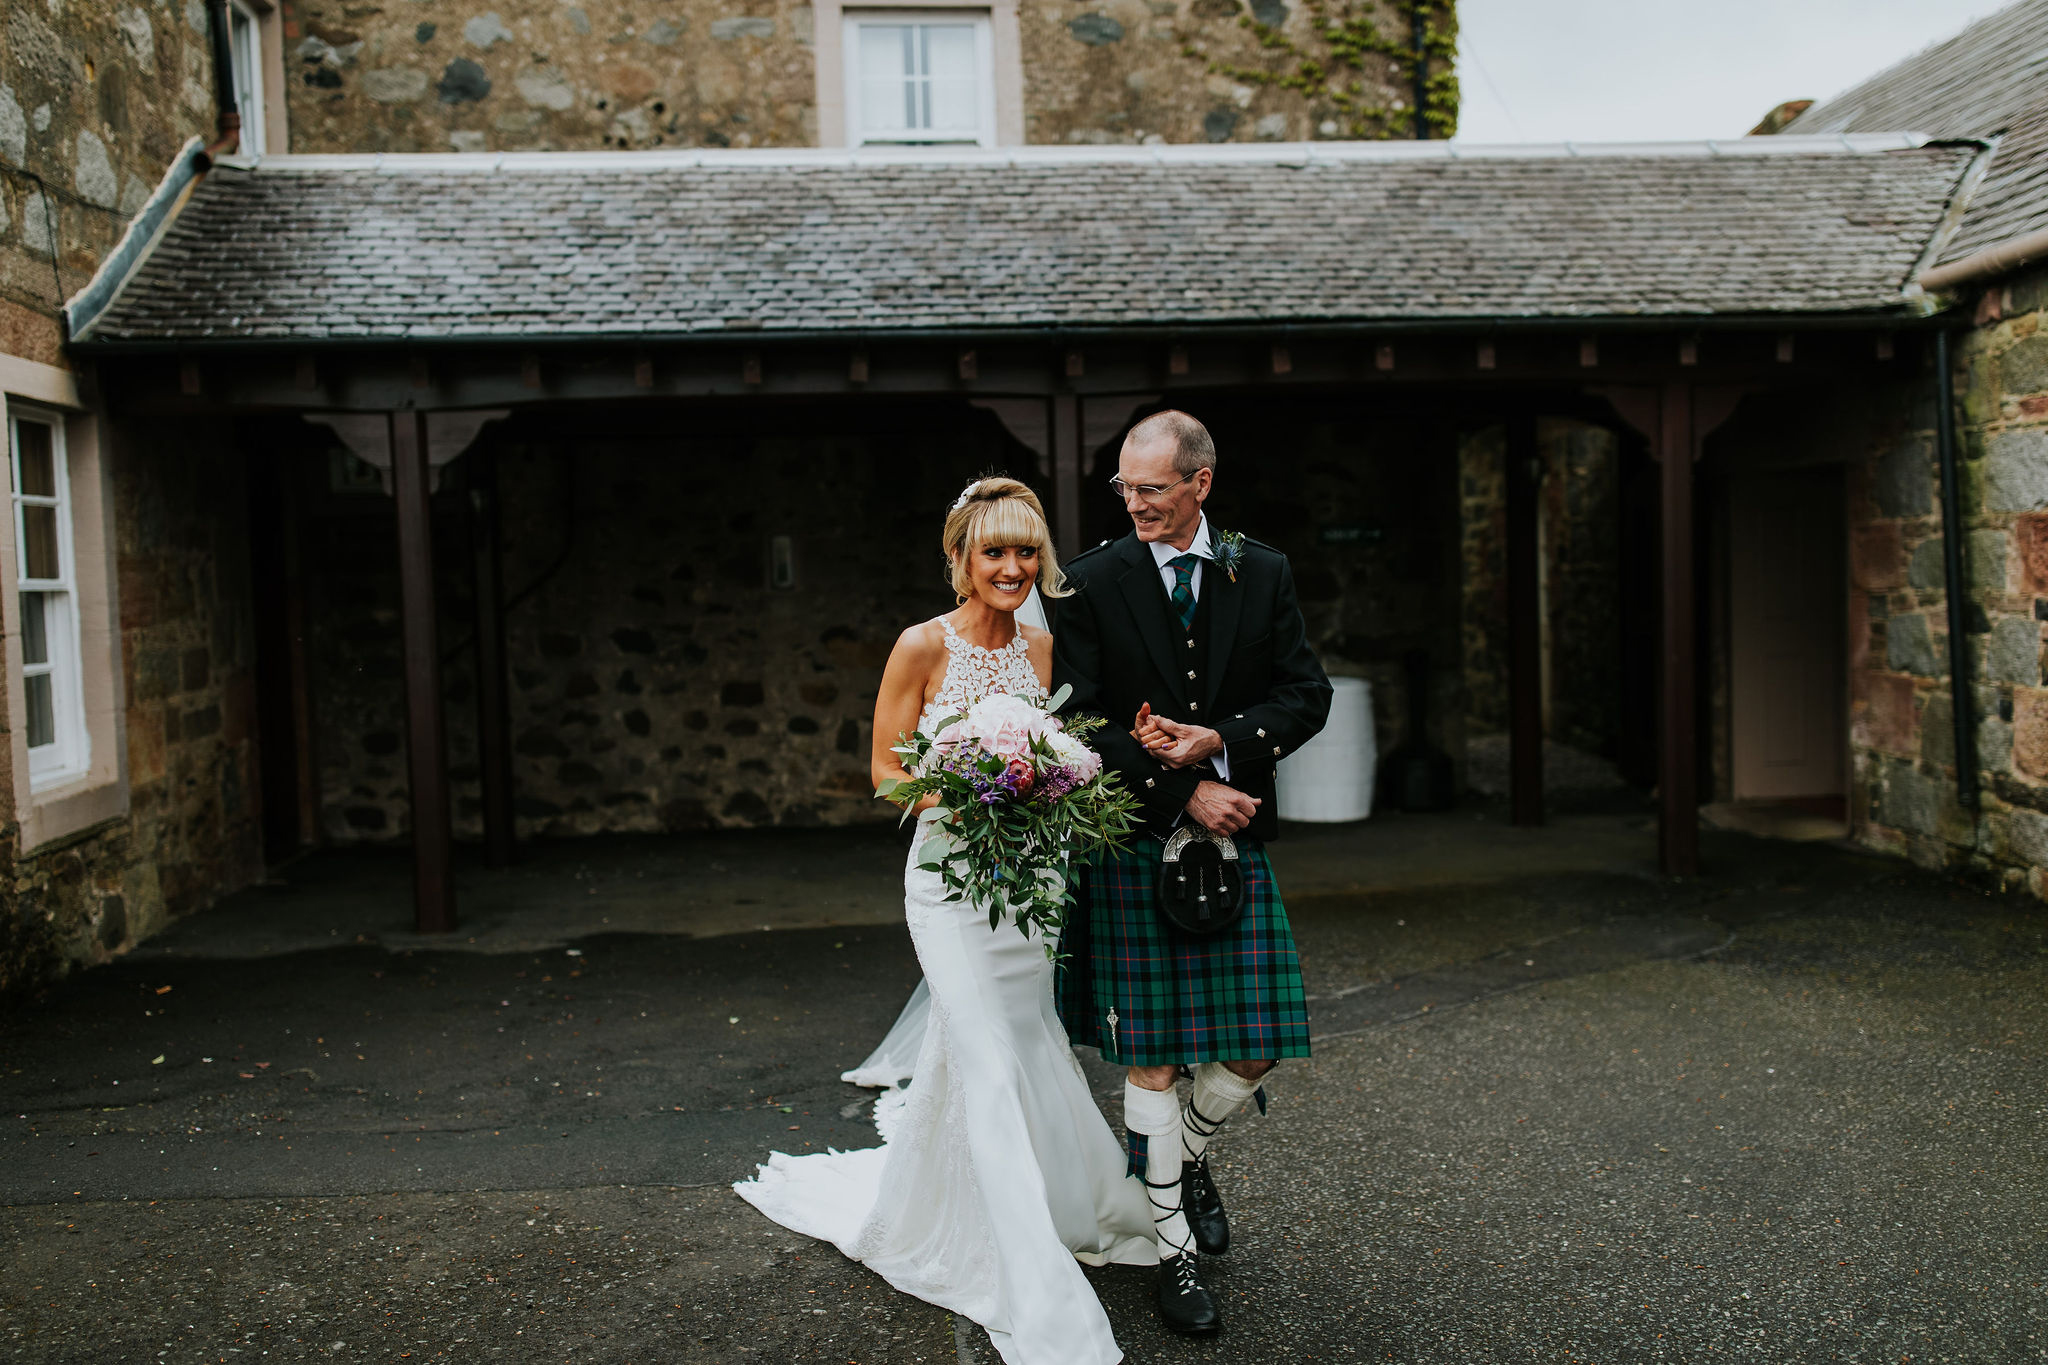 Dalduff-Farm-wedding-photographer  (39).jpg